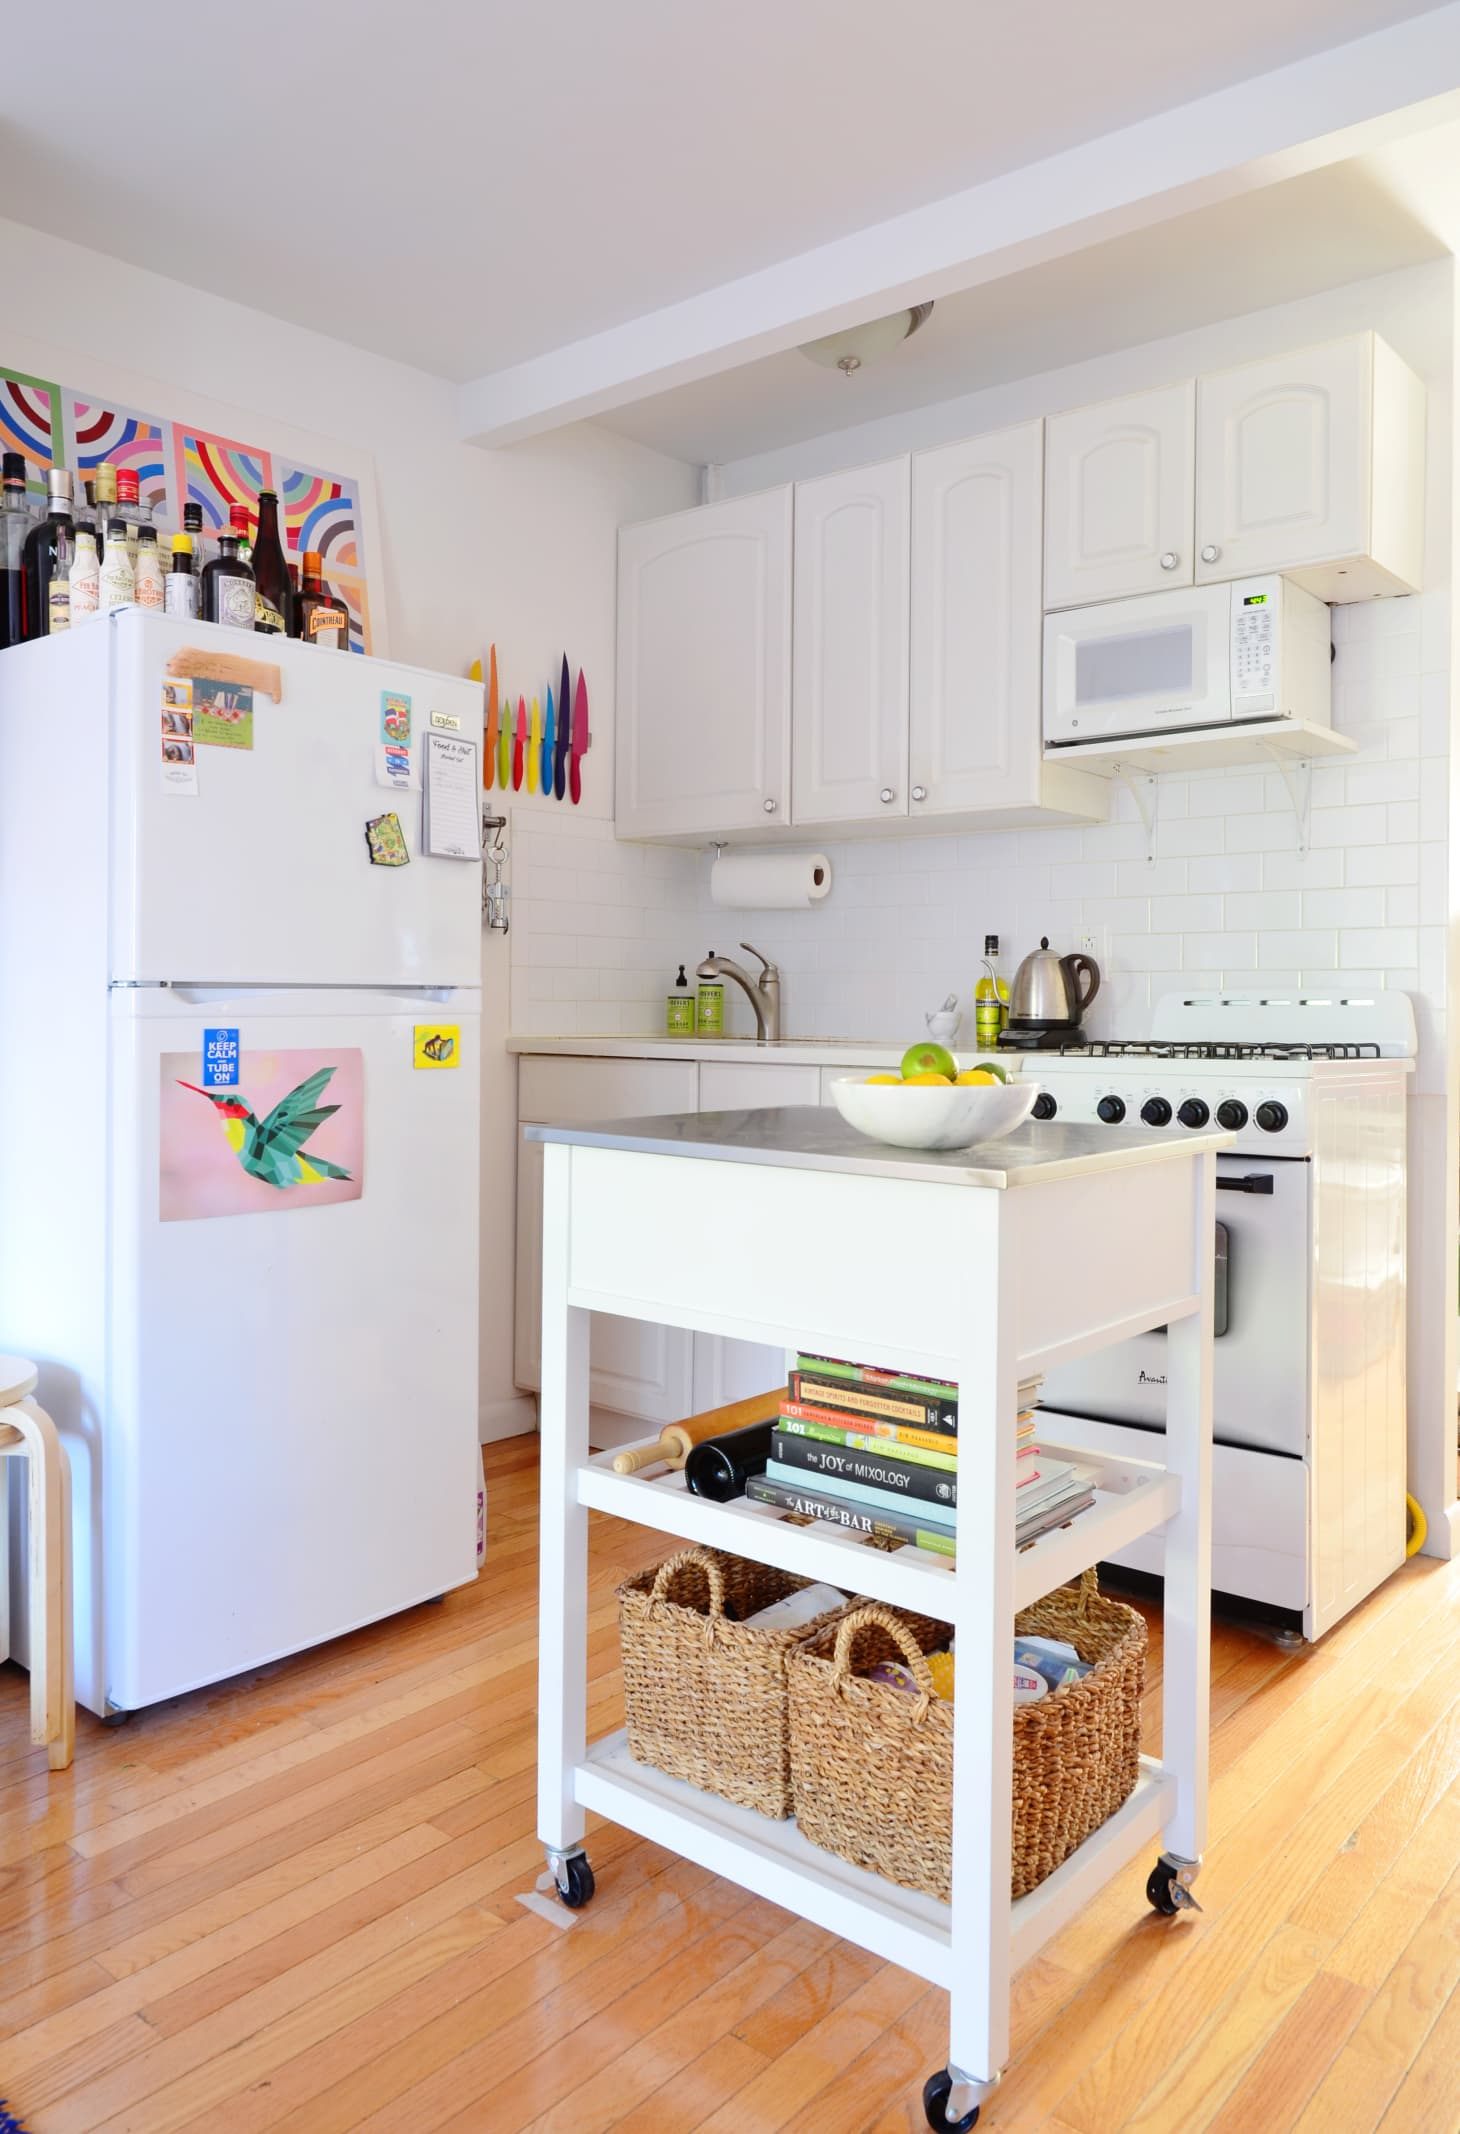 Room For Rent Design: Ideas For Decorating A Rental Apartment